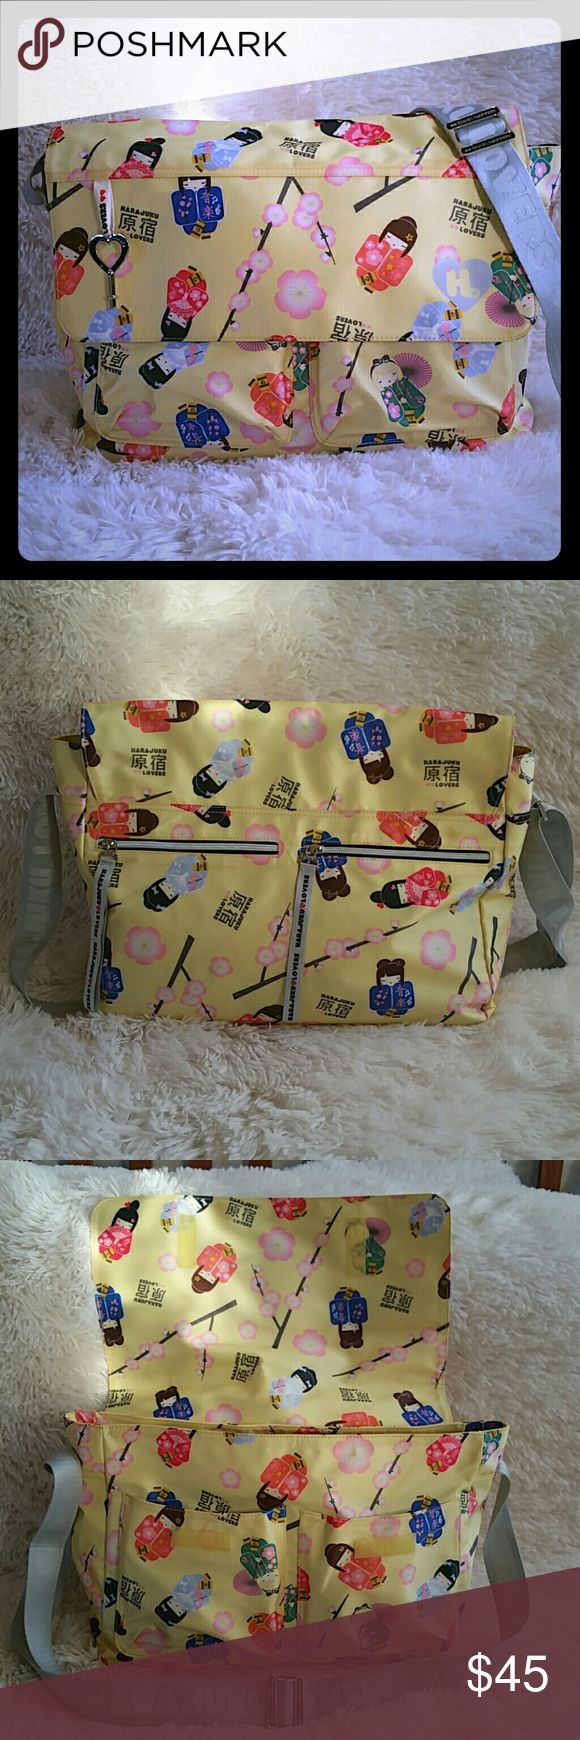 Harajuku Lovers by Gwen Stefani messenger bag Light yellow with amazingly adorable japanese cherry blossom harajuku girl print! Gray adjustable cross body strap, can be shortened or lengthened to wear as shoulder bag or cross body. Tons of pockets and storage. NWOT never used just been a part of my collection since it came out. This would make a great diaper or travel bag too! Inside and out pristine! Harajuku Lovers Bags Shoulder Bags